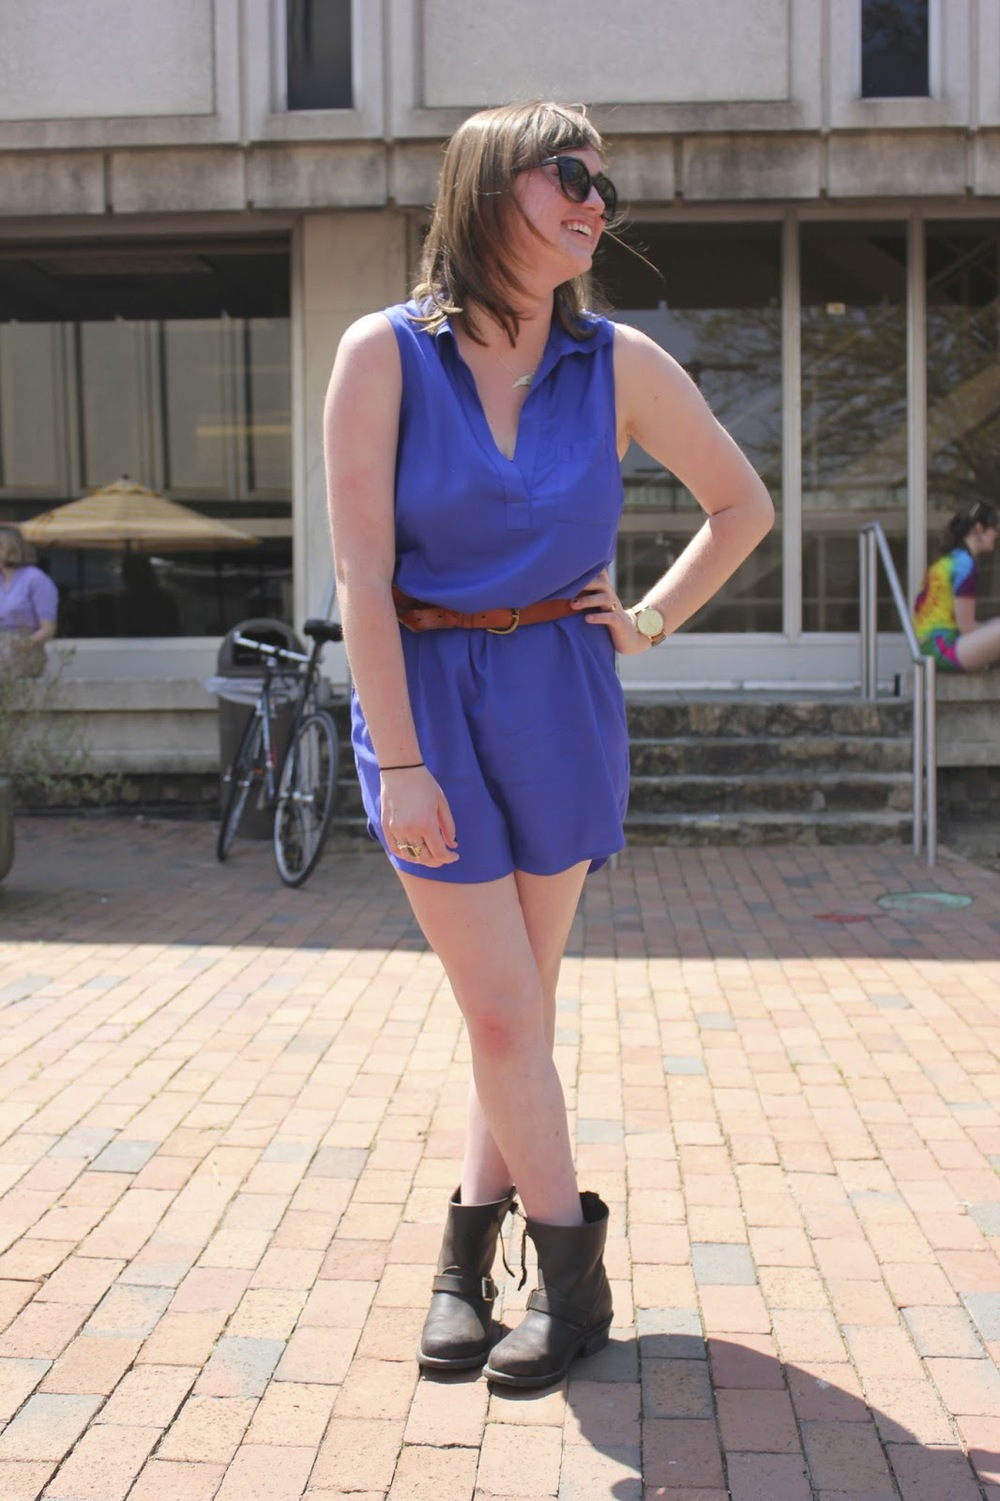 UNC Junior, Nan C. wears a blue sleeveless dress cinched by a brown belt golden buckle and a pair of leather round buckle boots. Also wears a North Carolina state shaped necklace